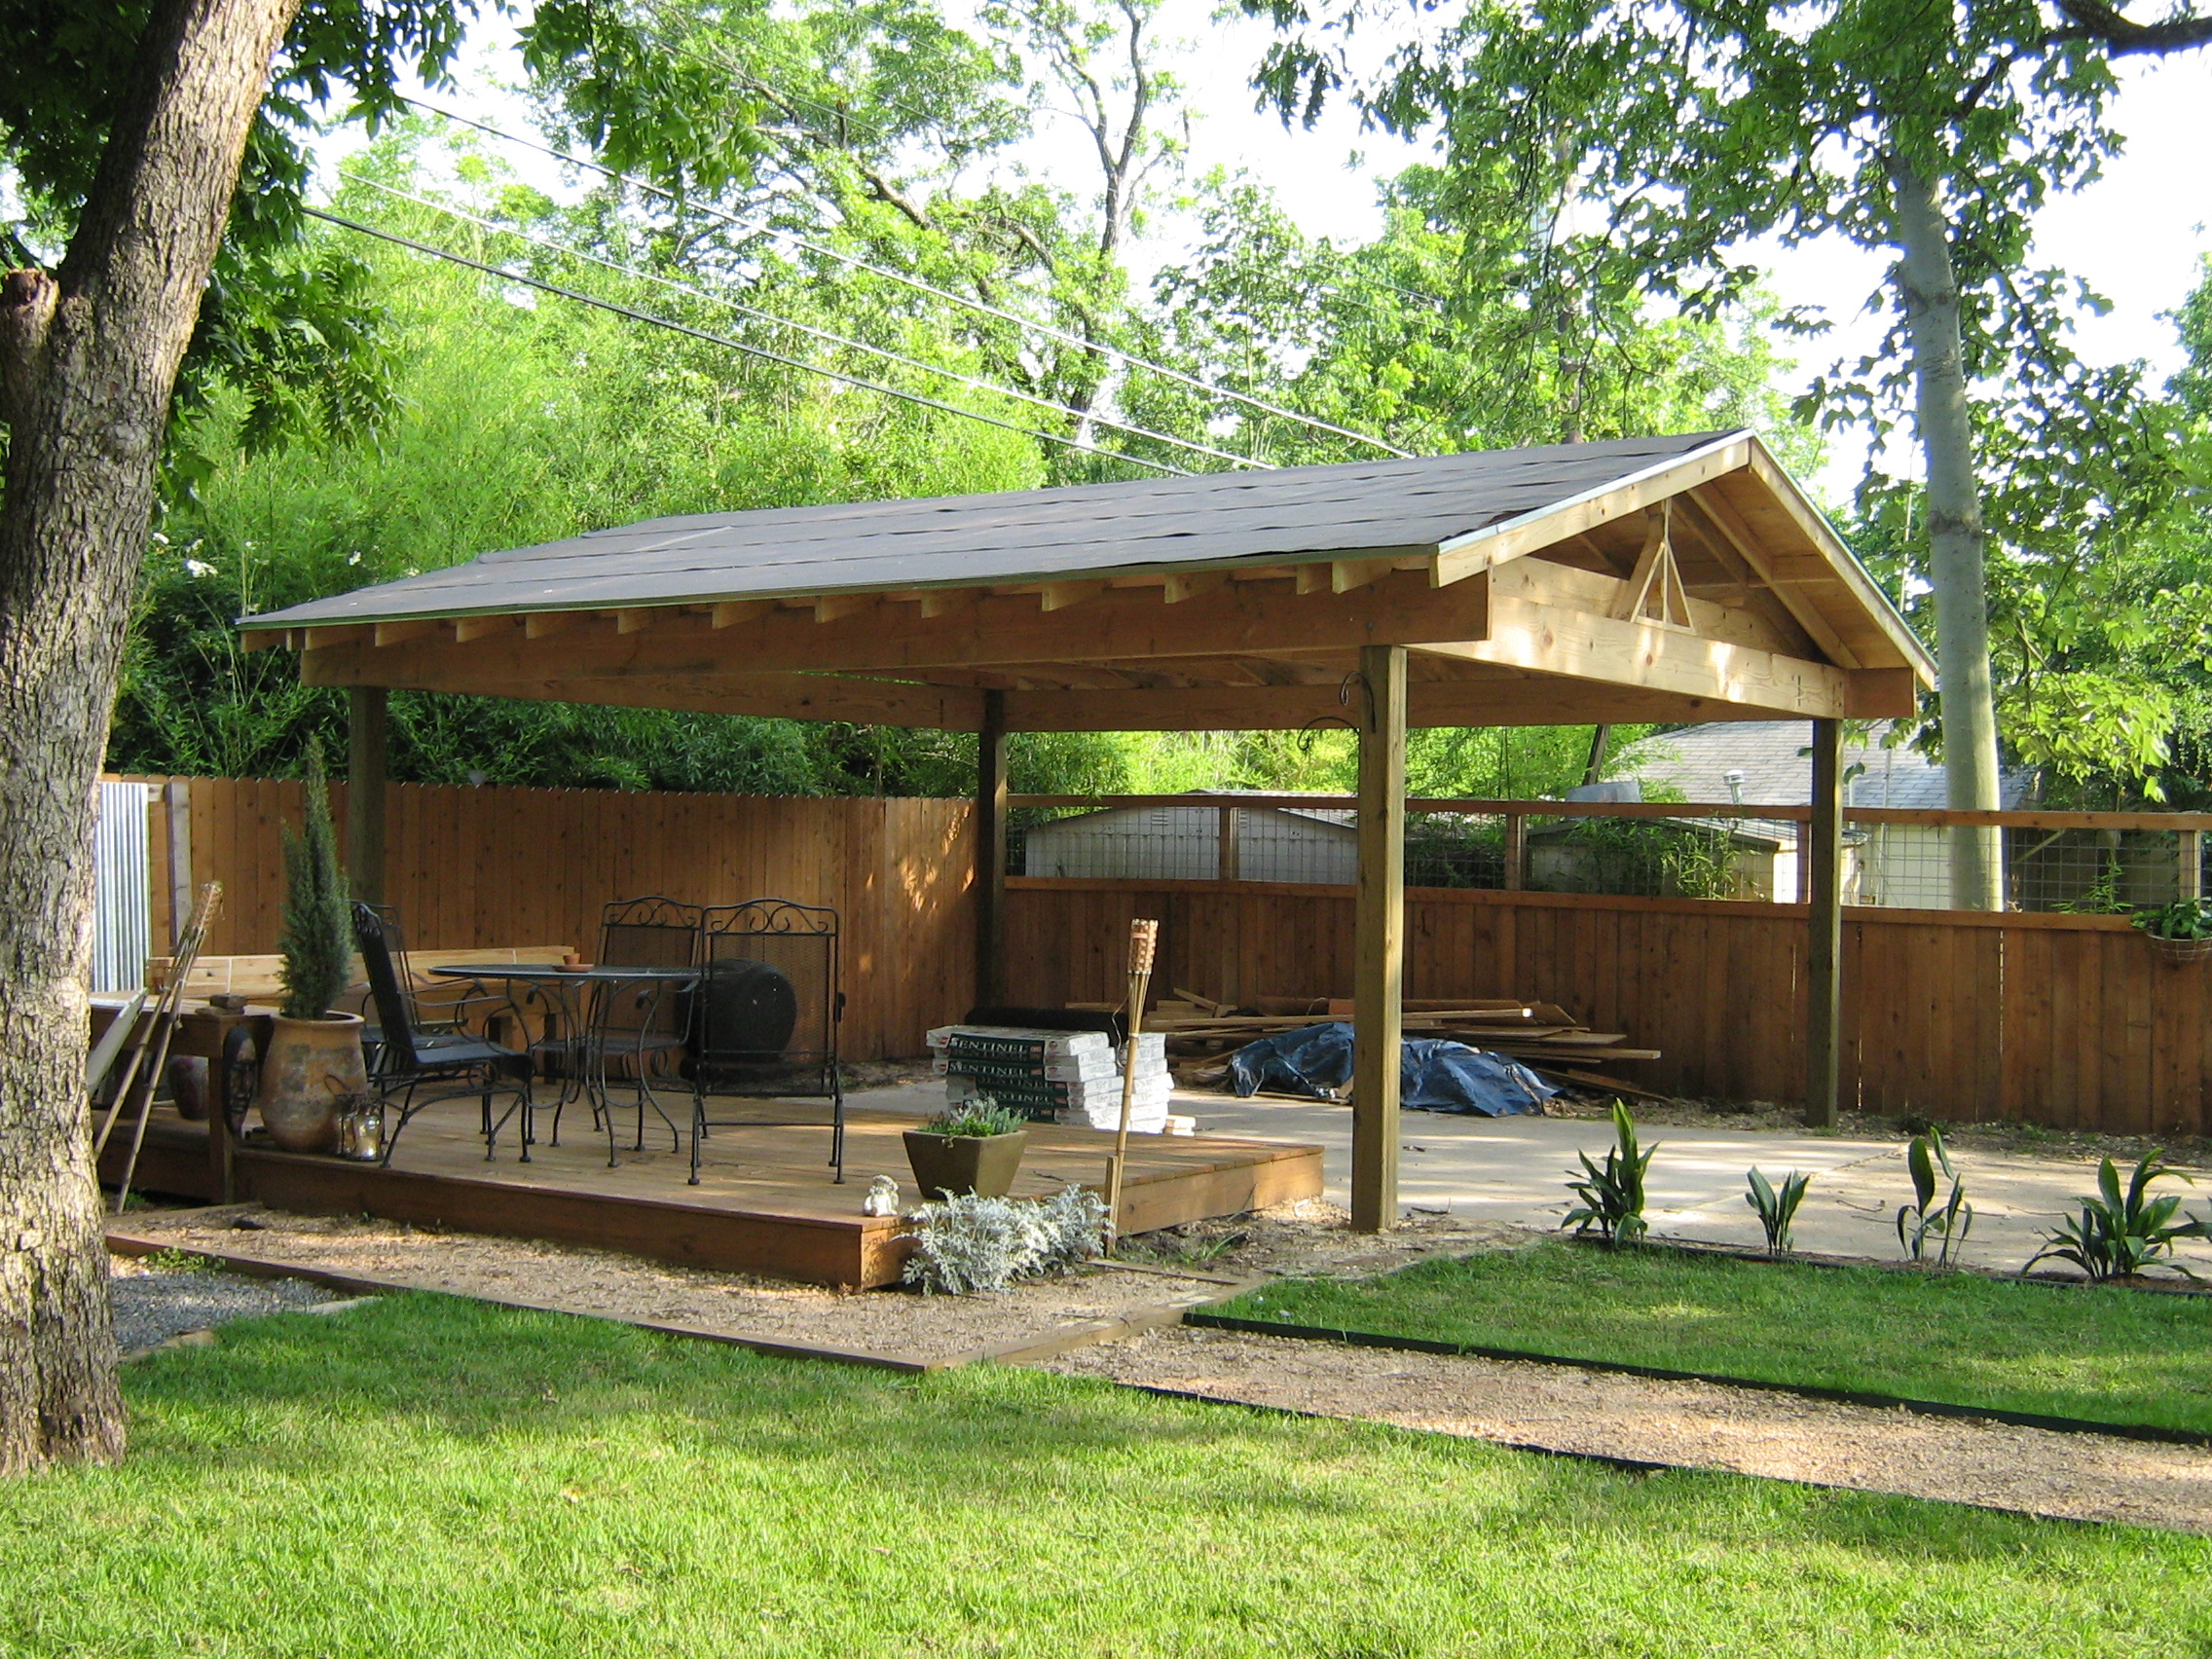 How to build wood carport kits do it yourself plans for 2 car carport plans